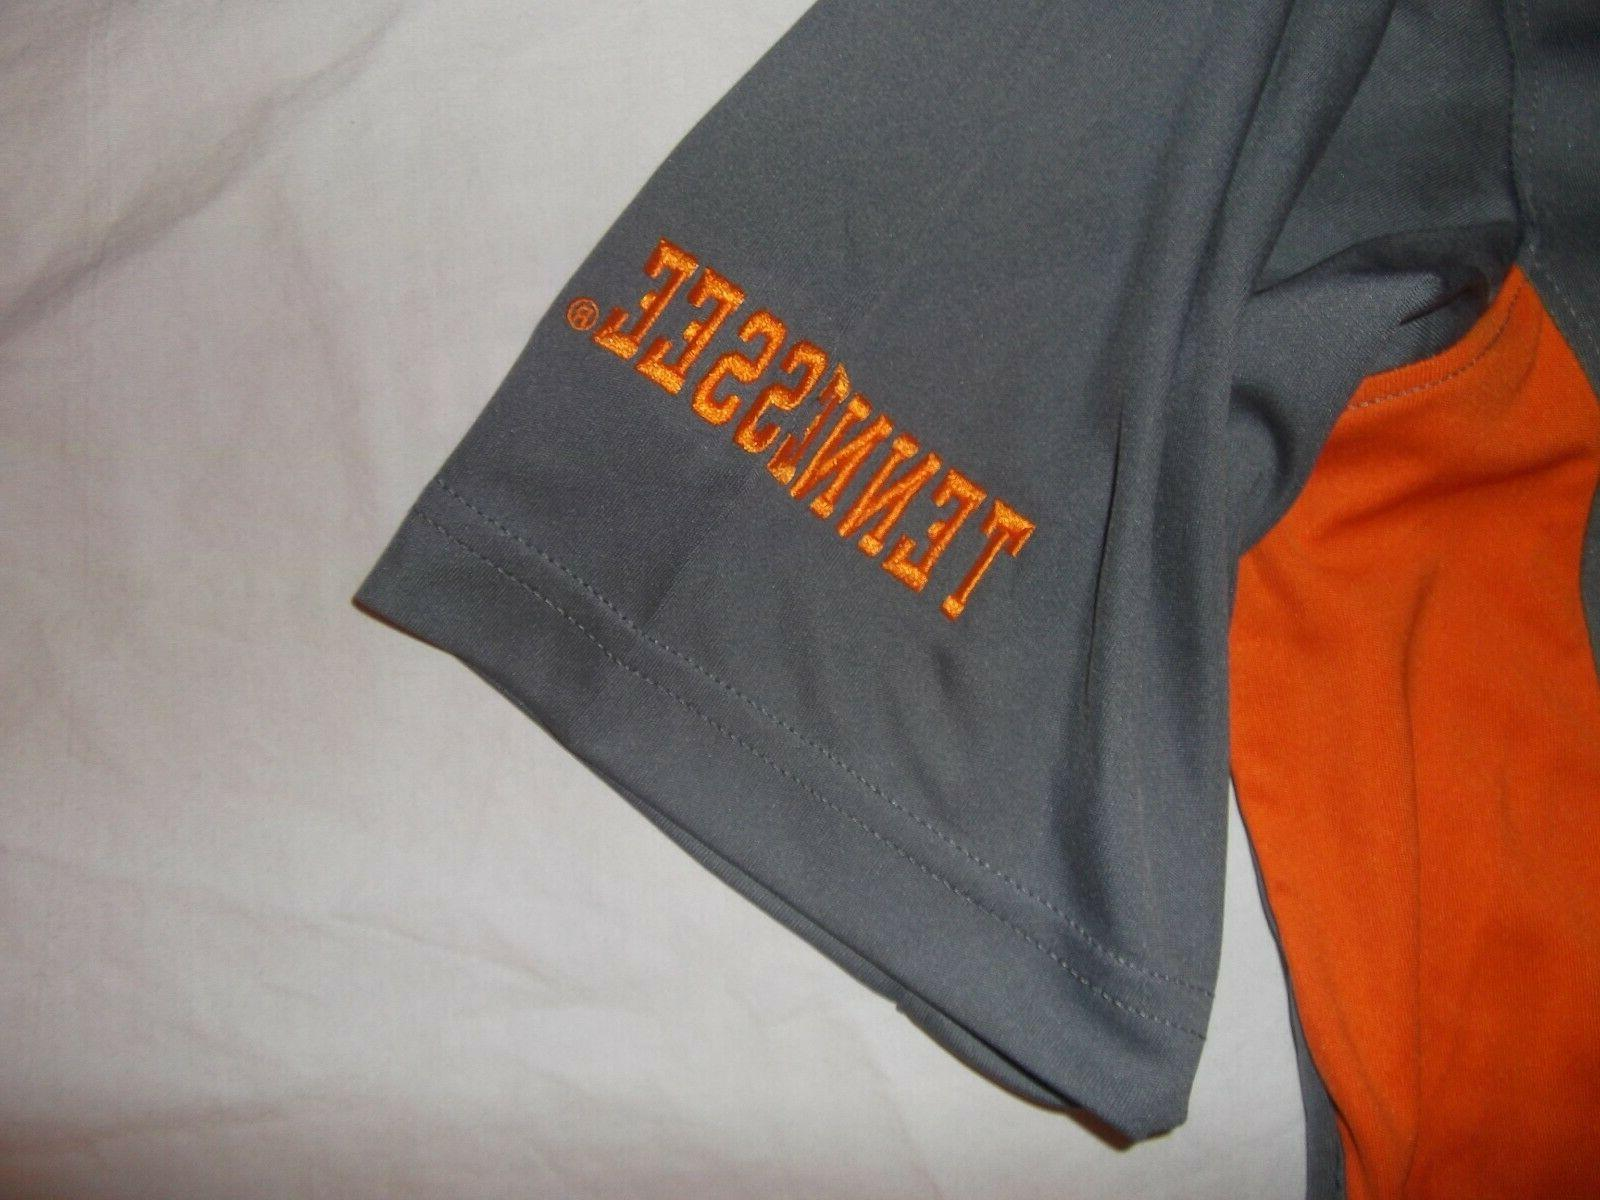 New University Knights Apparel UT golf shirt Vols gray orange L